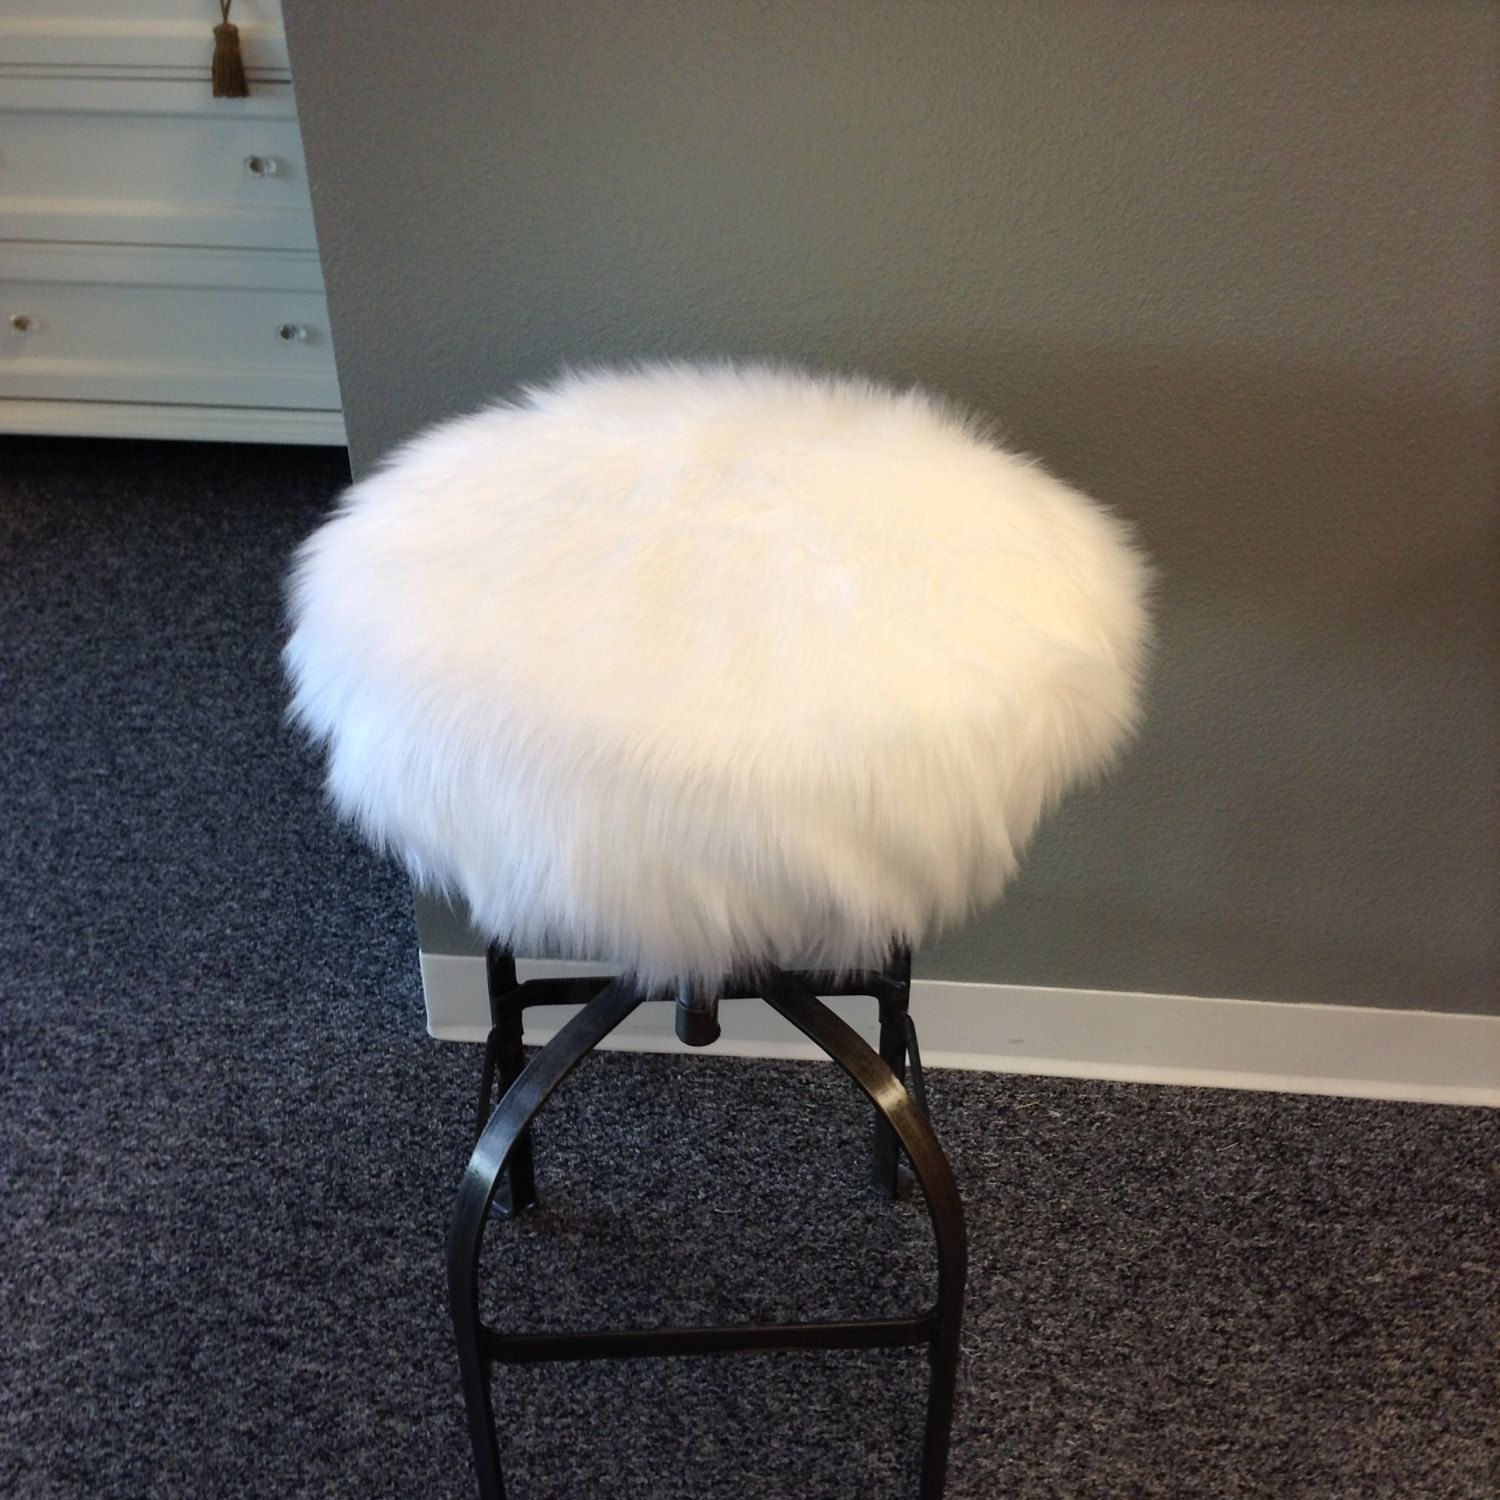 Faux Fur Luxury Shag Round Barstool Cover Kitchen Counter Etsy Round Bar Stools Bar Stool Covers Stool Covers